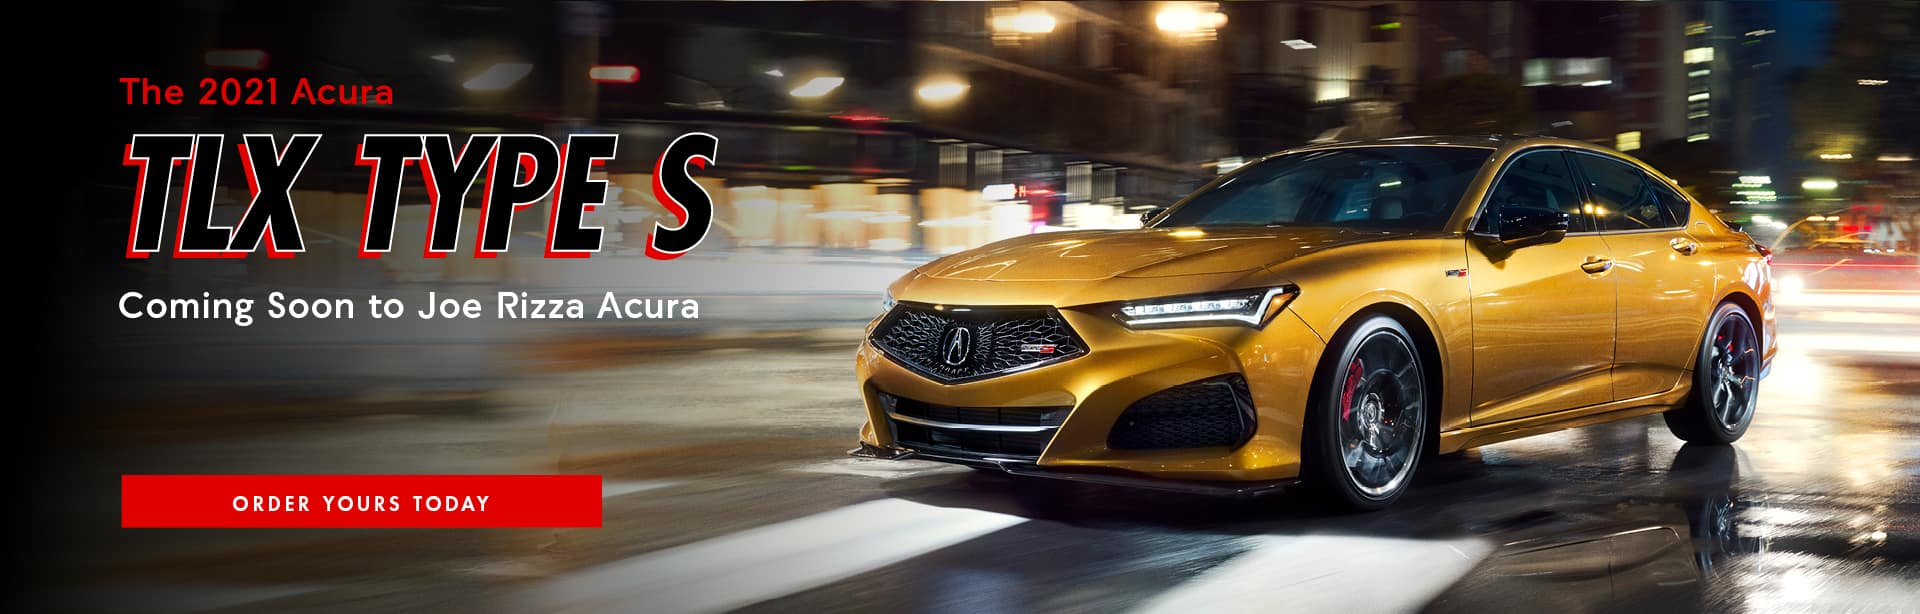 TLX Type S Banner